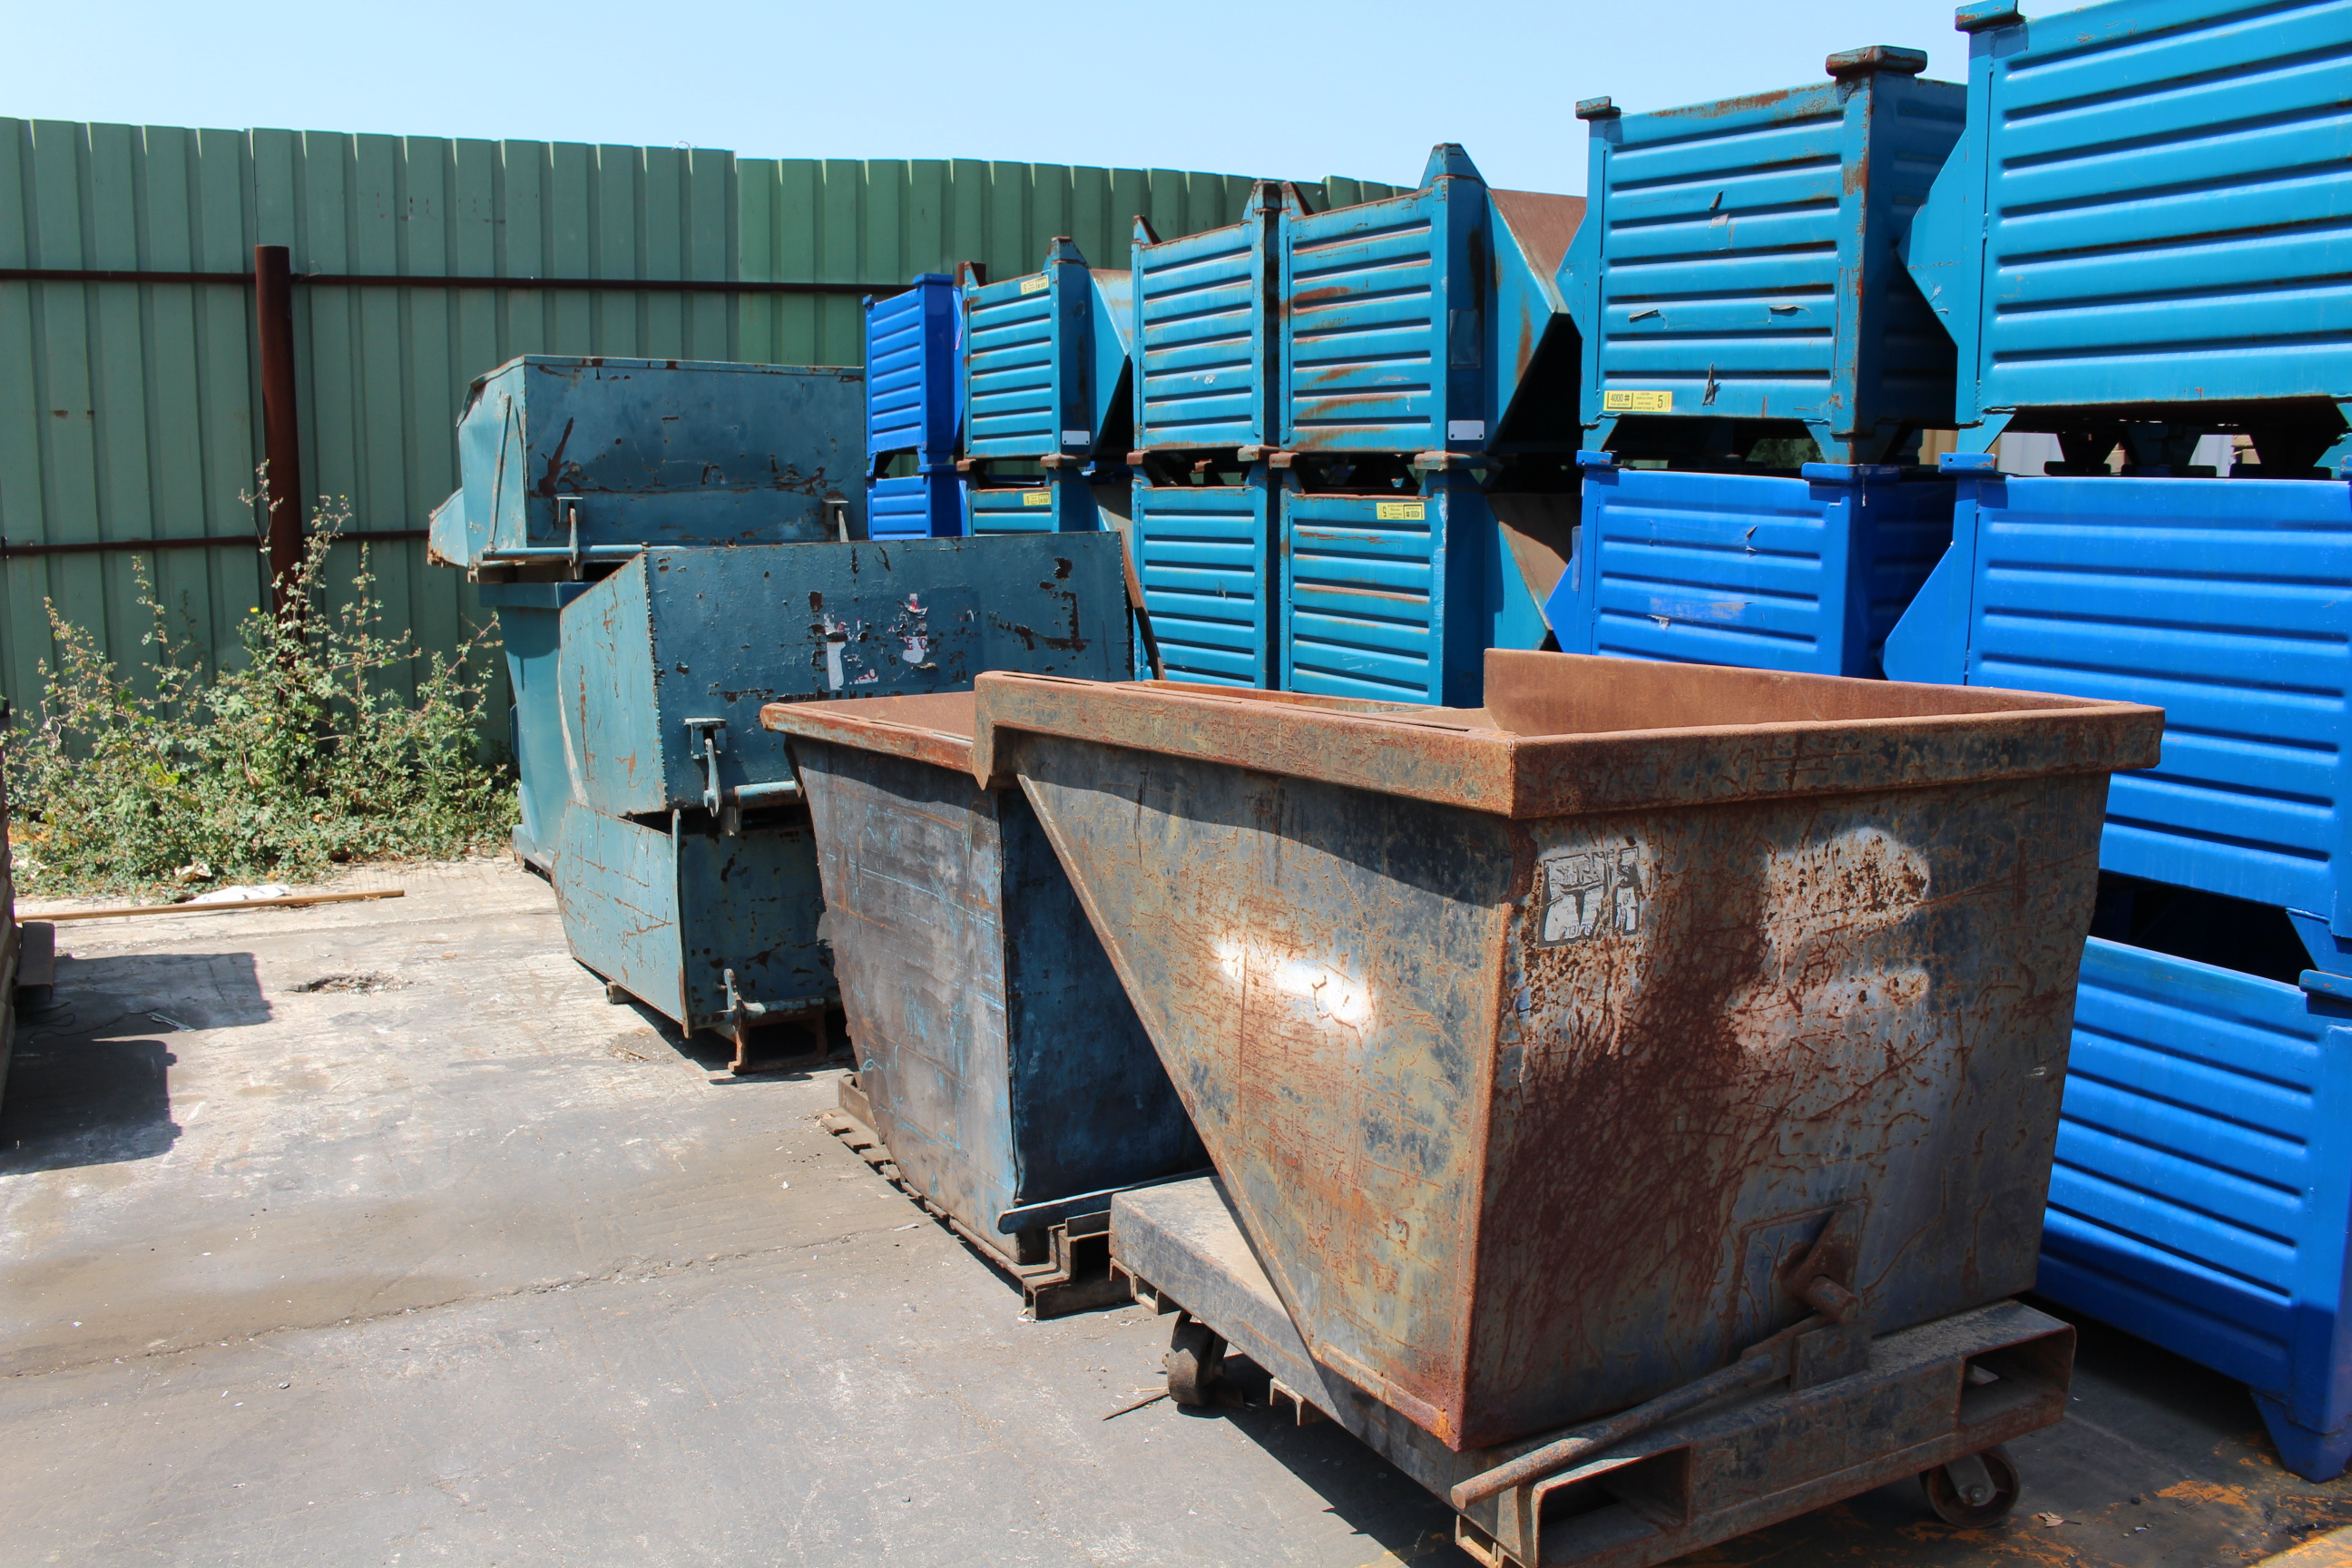 Lot 0 - PHOTOS OF SKID STEER, STAKE BED TRUCK, FORKLIFTS, (186) METAL BINS AND SHOP EQUIPMENT